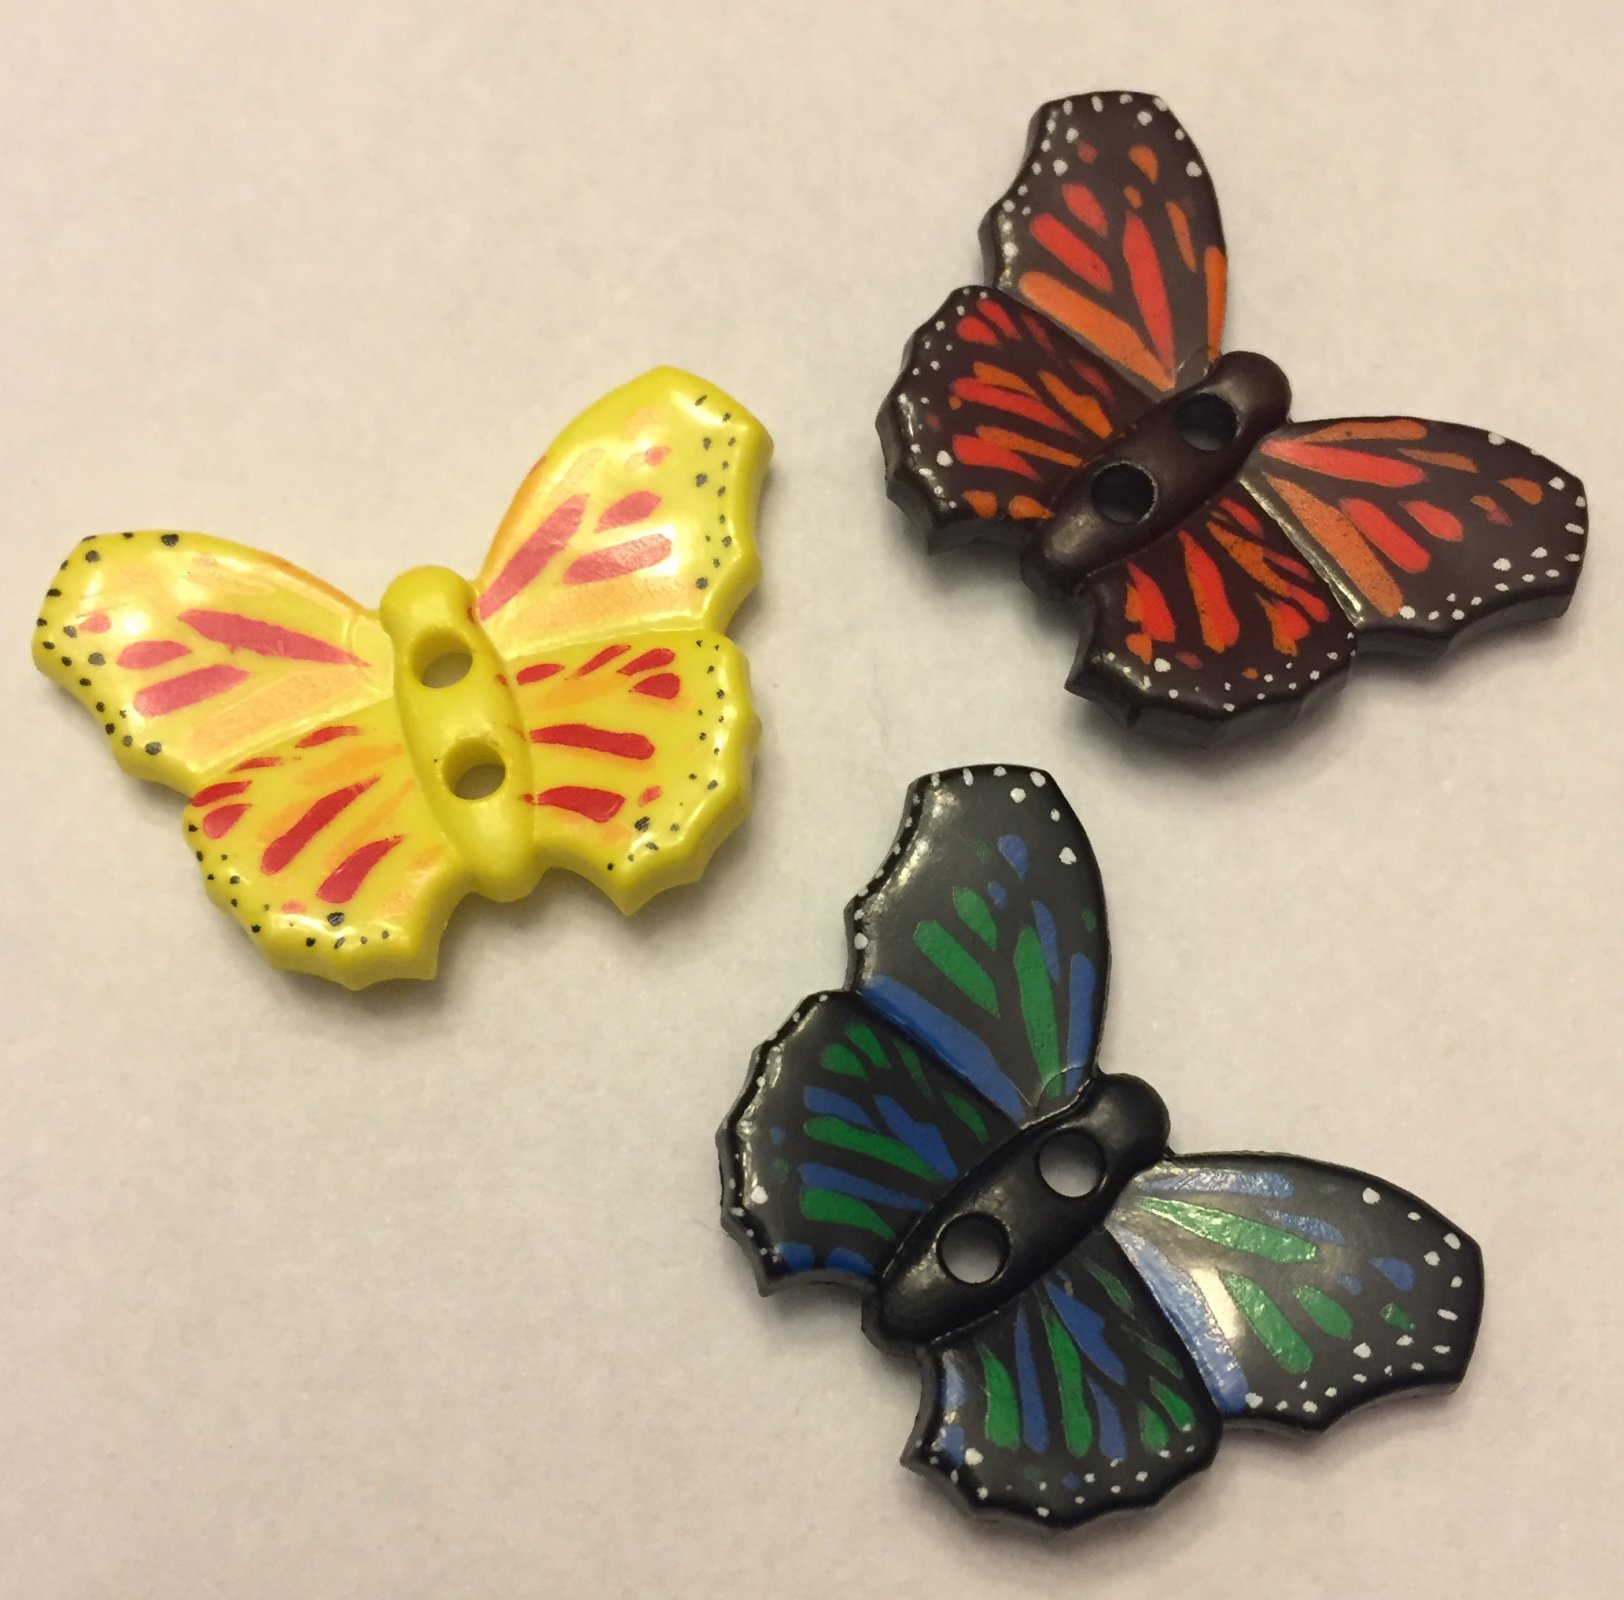 *BUTTERFLY PLASTIC TWO-HOLE NOVELTY BUTTON//MULTI//1 1/8 - 28MM//WASHABLE - DRY CLEANABLE//DILL BUTTONS